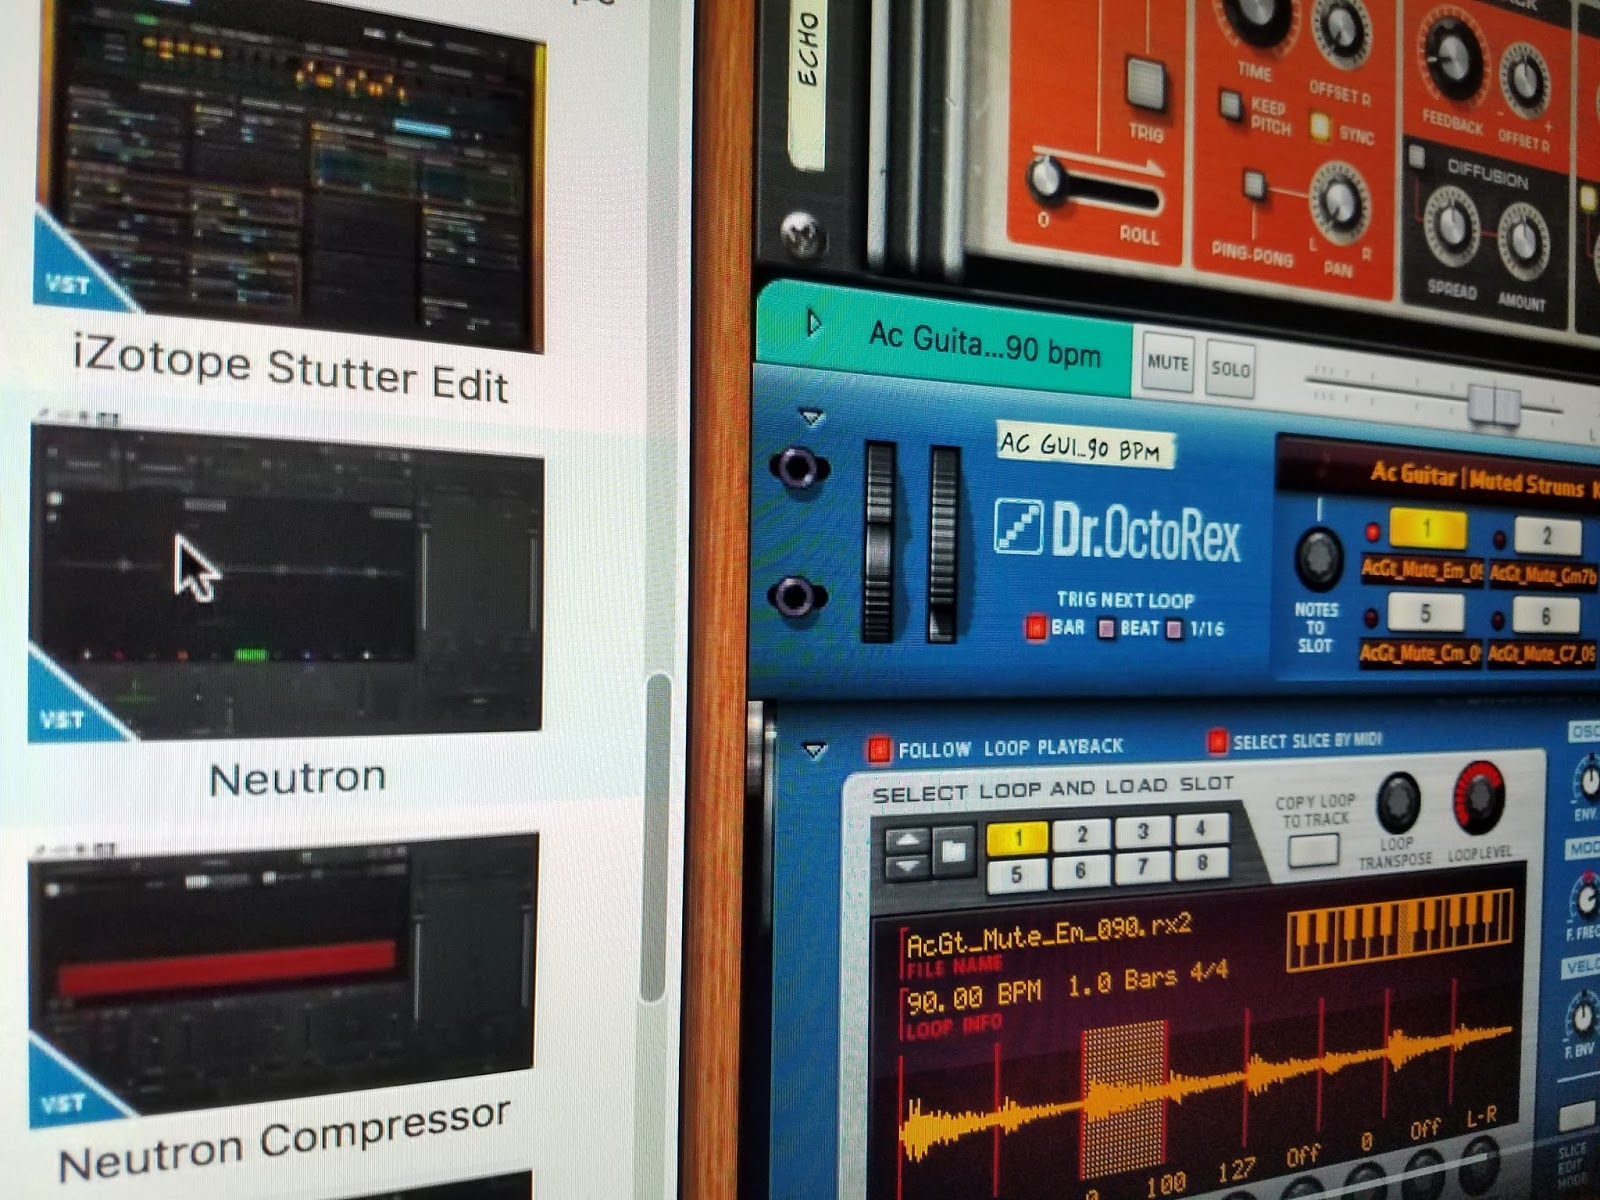 Game Changer: VST's in REASON 9.5!